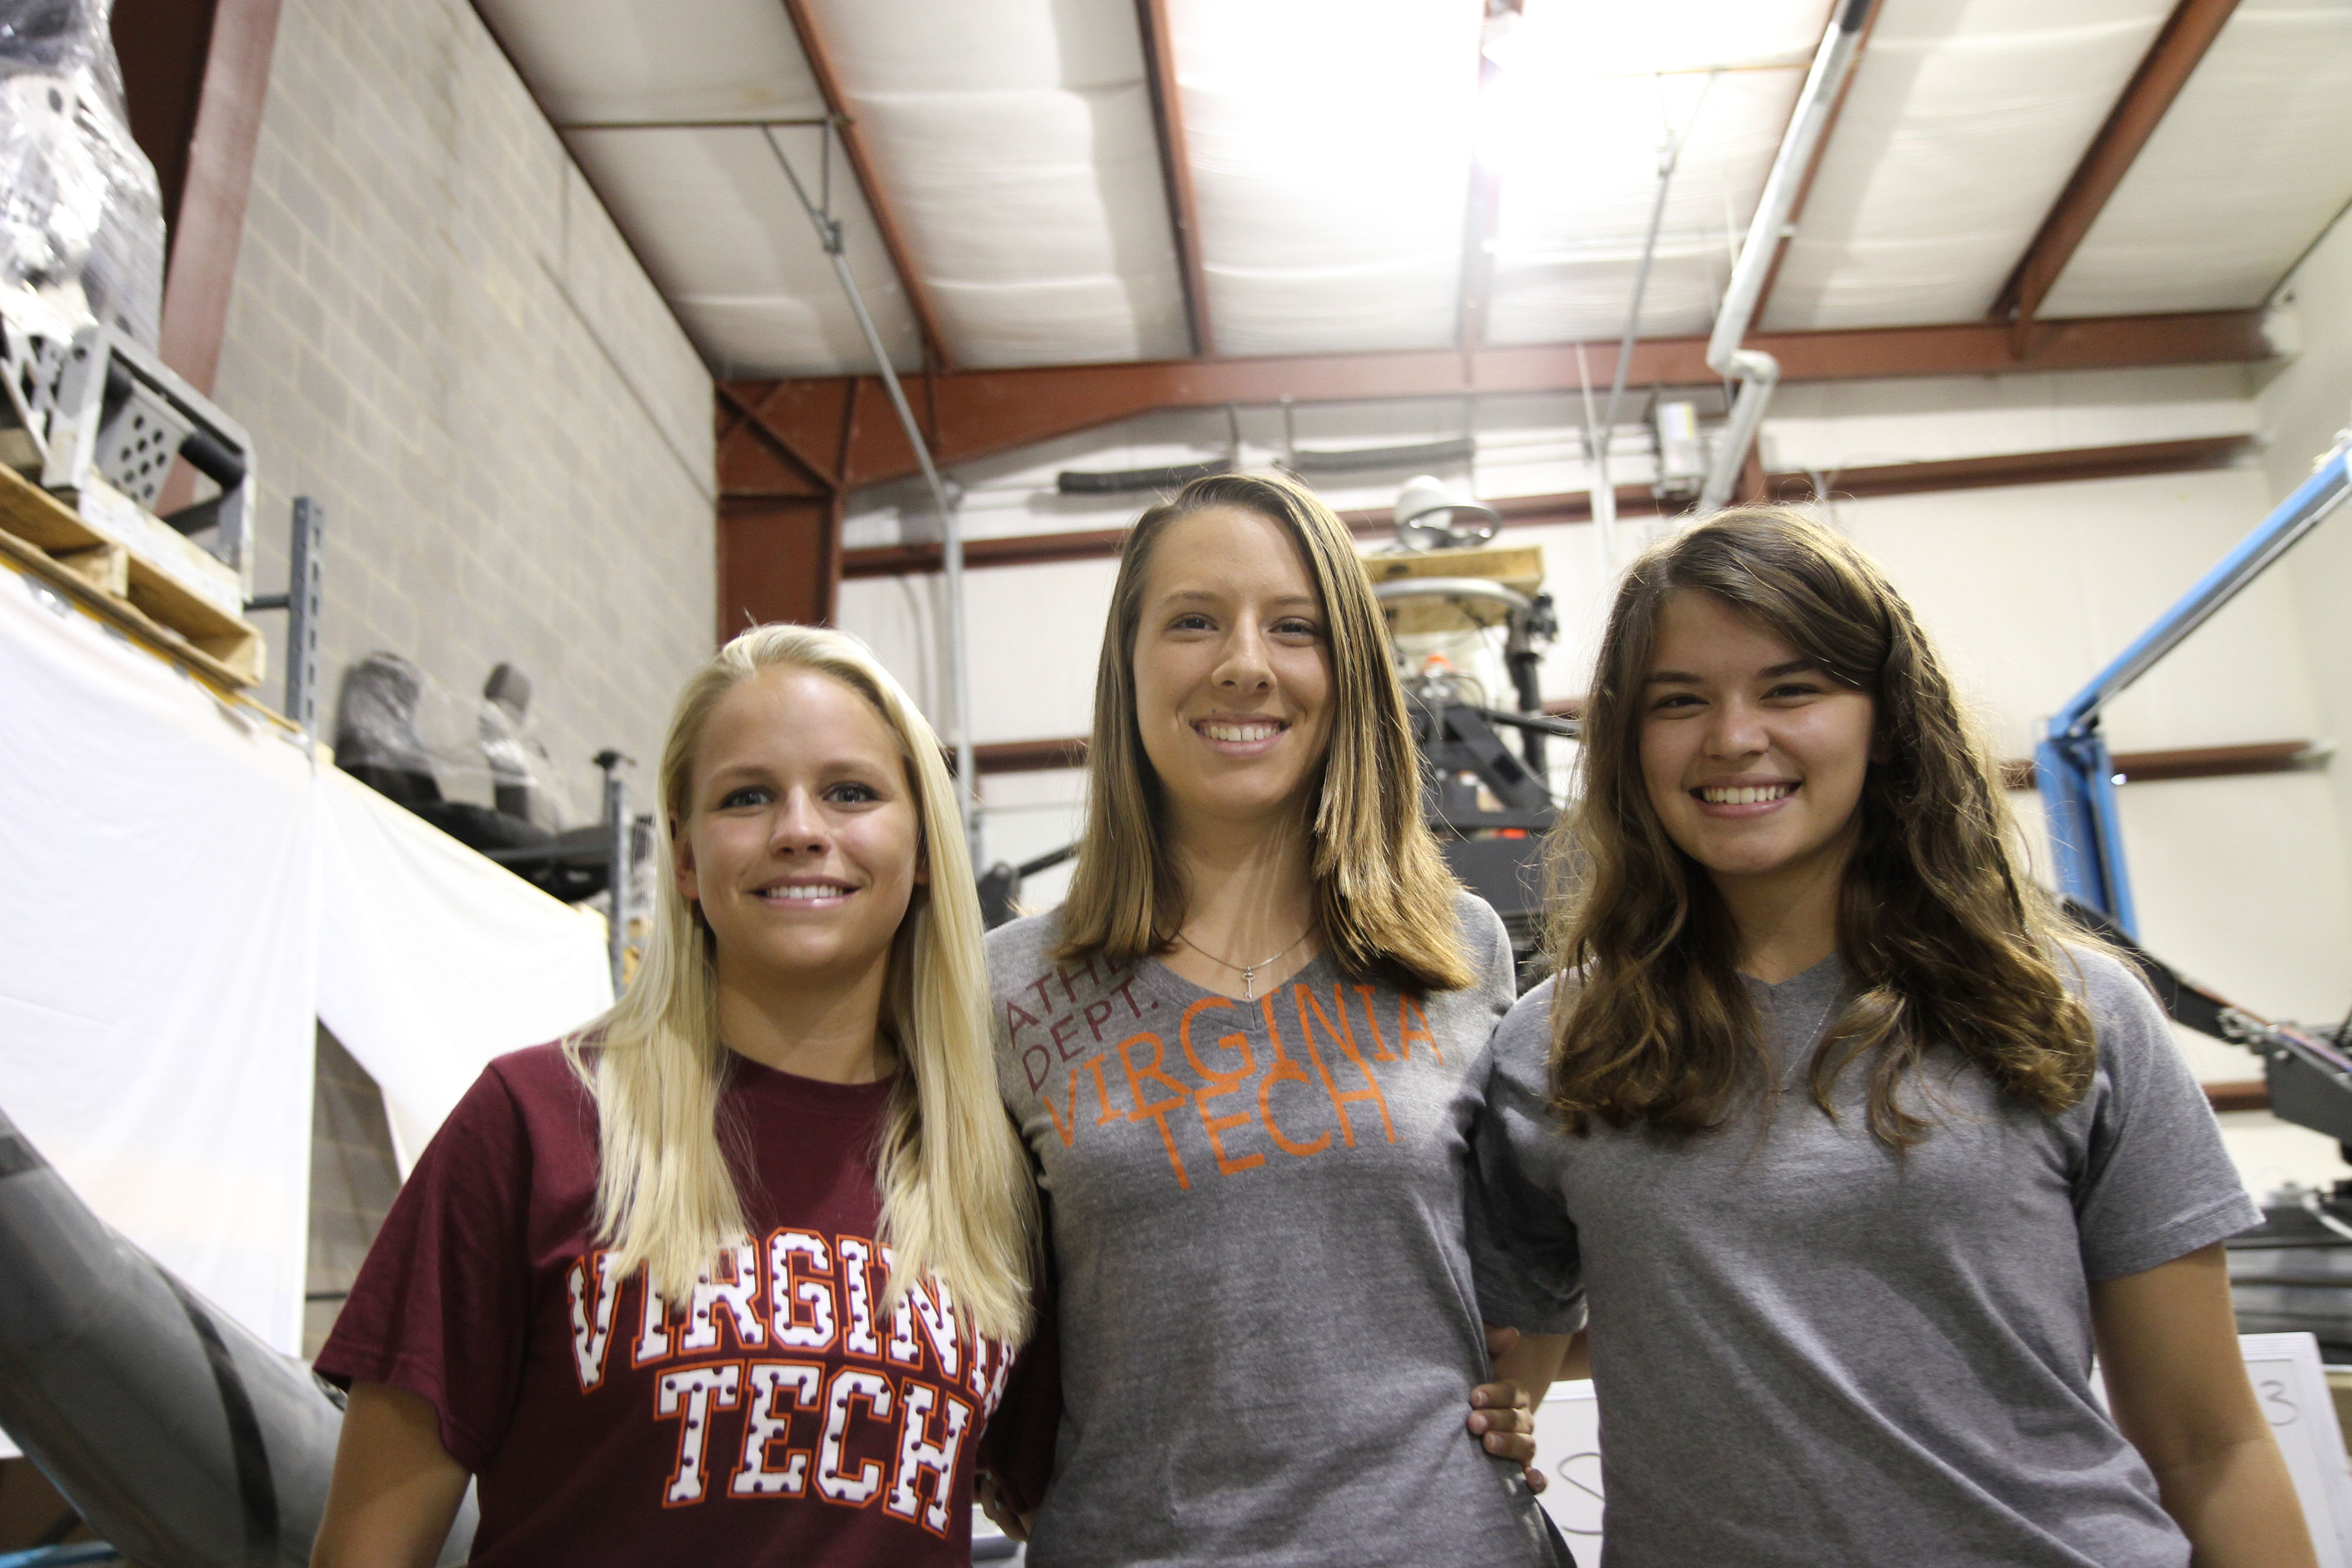 Alisha Konst and Robin Roston, both rising juniors in mechanical engineering at Virginia Tech, and Alison Brown, a rising sophomore in electrical engineering at Virginia Western Community College, meet at Virginia Tech's Center for Vehicle Systems and Safety Lab.